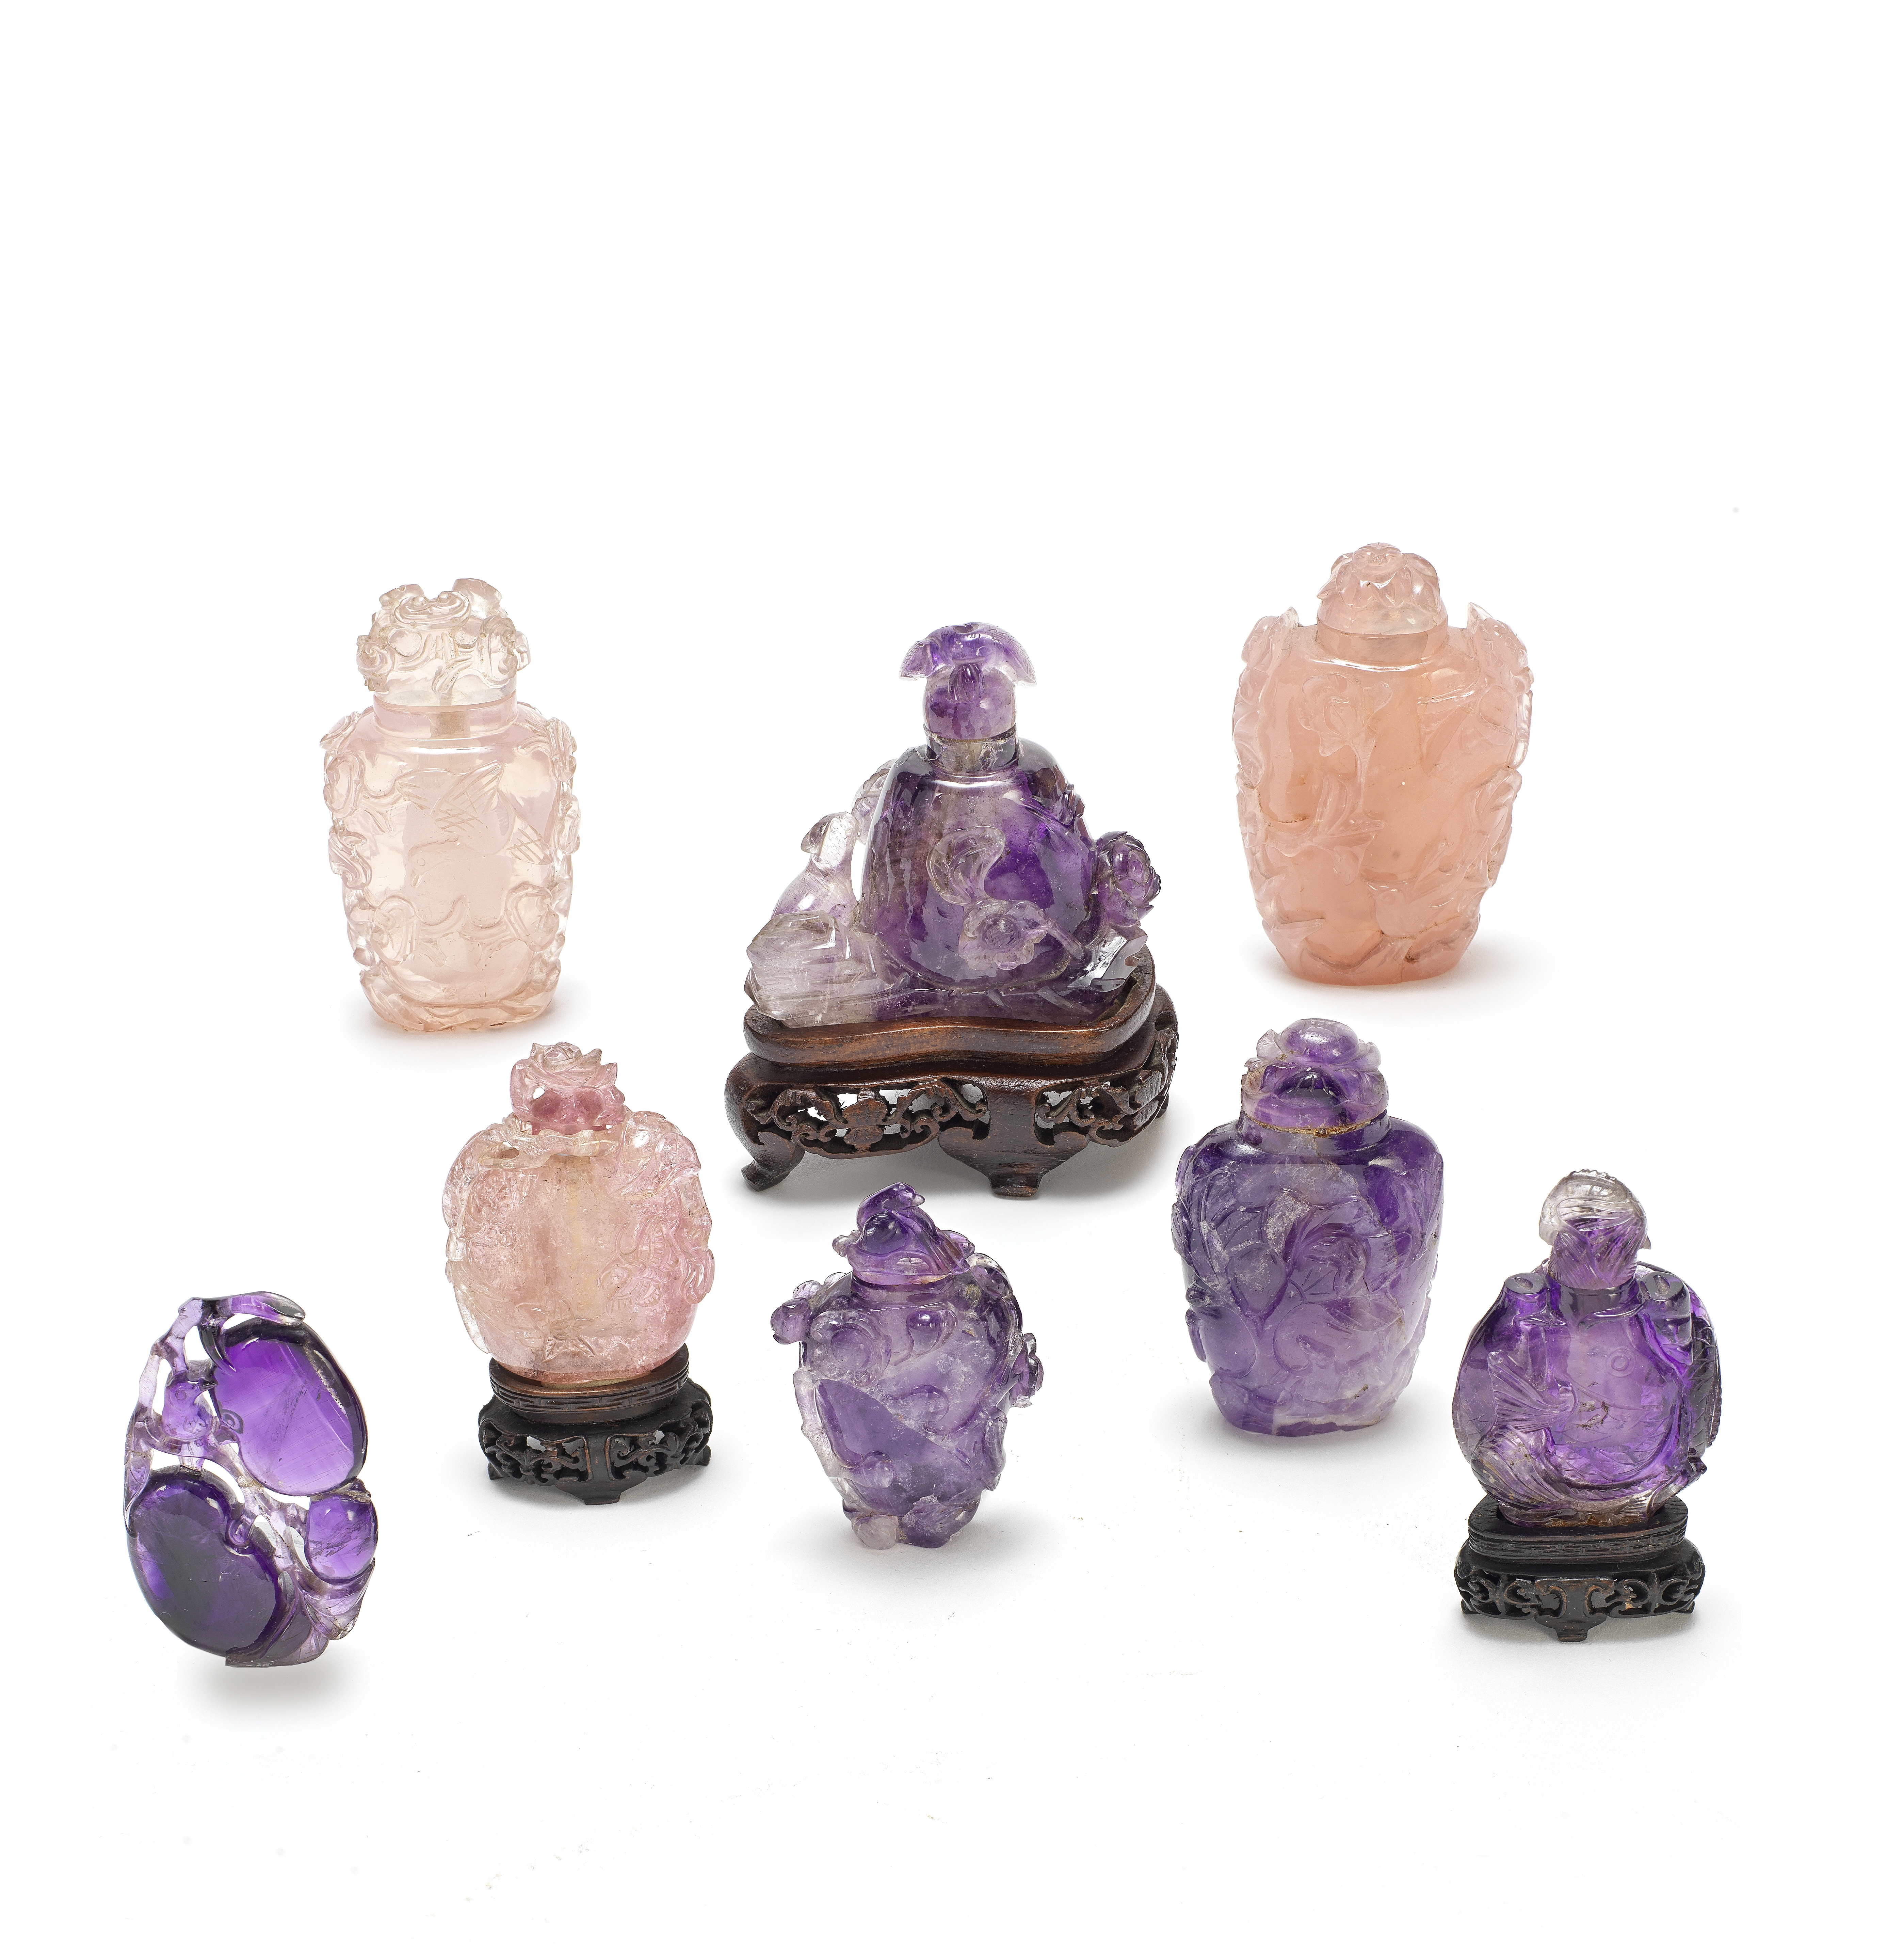 A TOURMALINE, FOUR AMETHYST AND TWO ROSE-QUARTZ SNUFF BOTTLES TOGETHER WITH AN AMETHYST PENDANT Q...